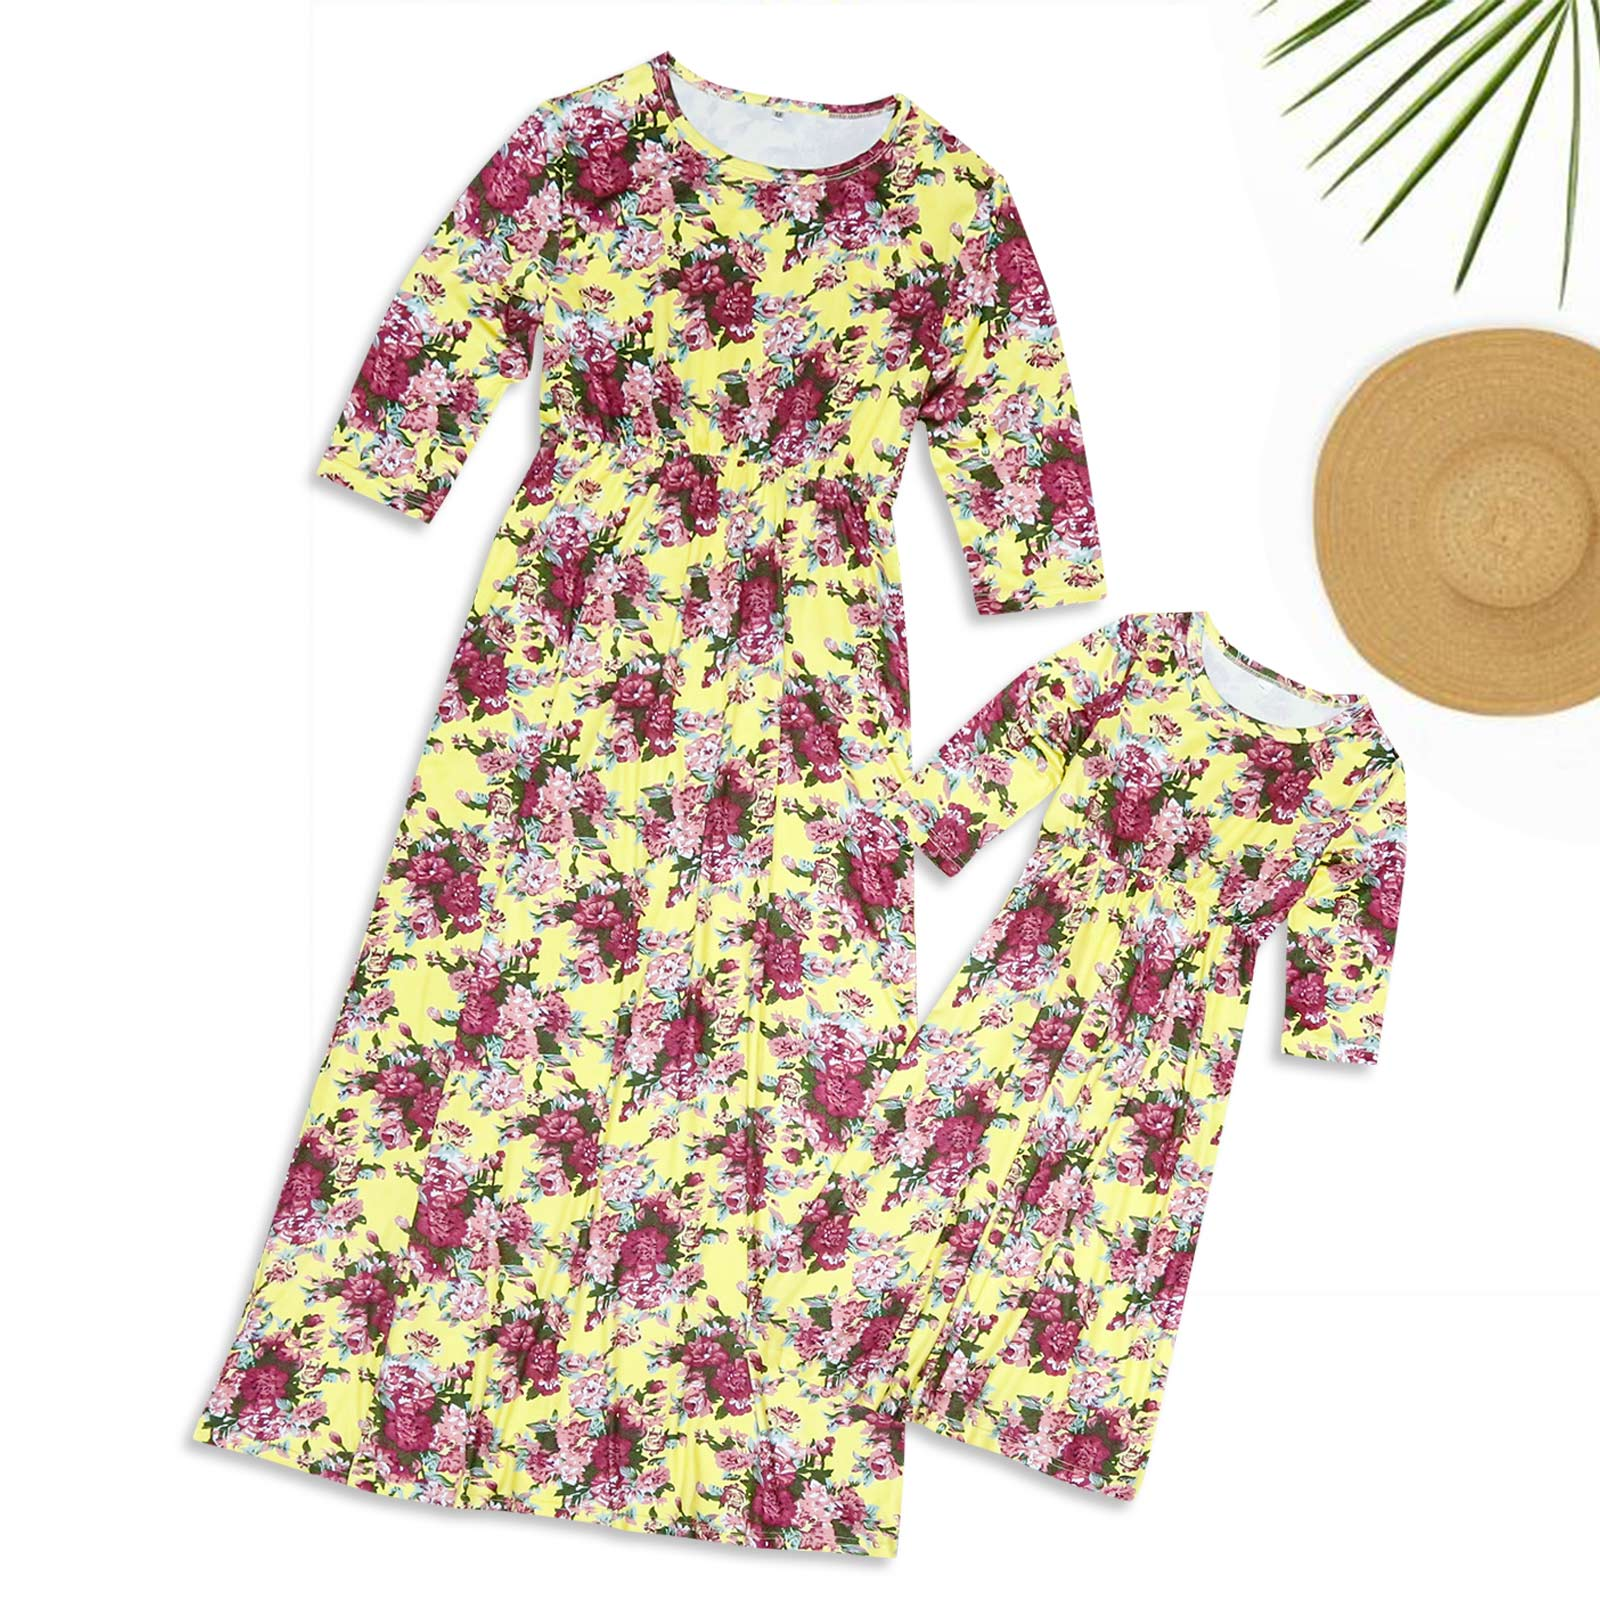 Mommy and Me Floral Printed Short-sleeve Maxi Dress in Light Yellow